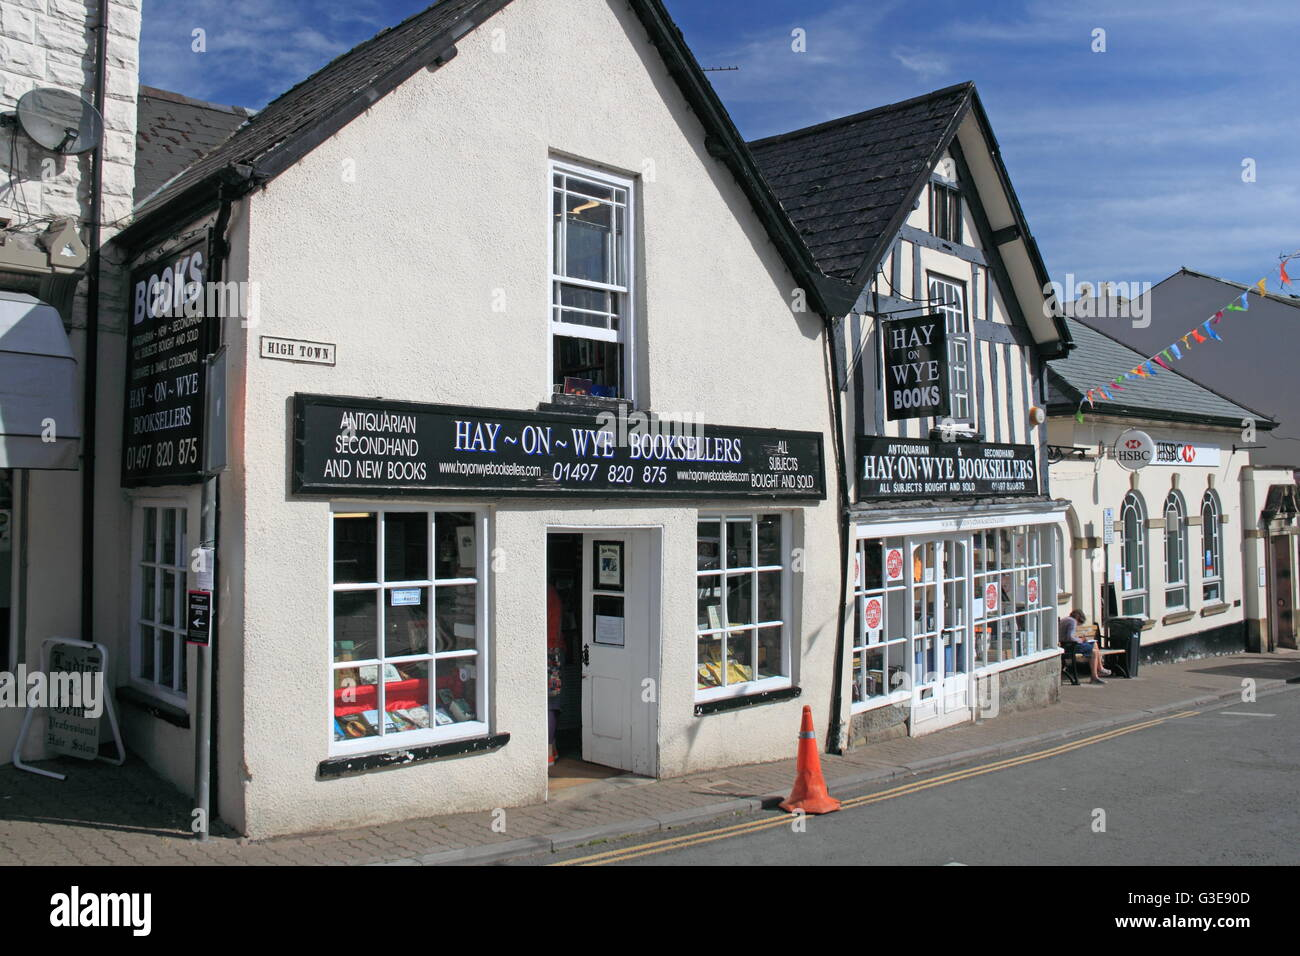 Hay-on-Wye Booksellers, Castle Street, Hay-on-Wye, Powys, Wales, Great Britain, United Kingdom, UK, Europe - Stock Image